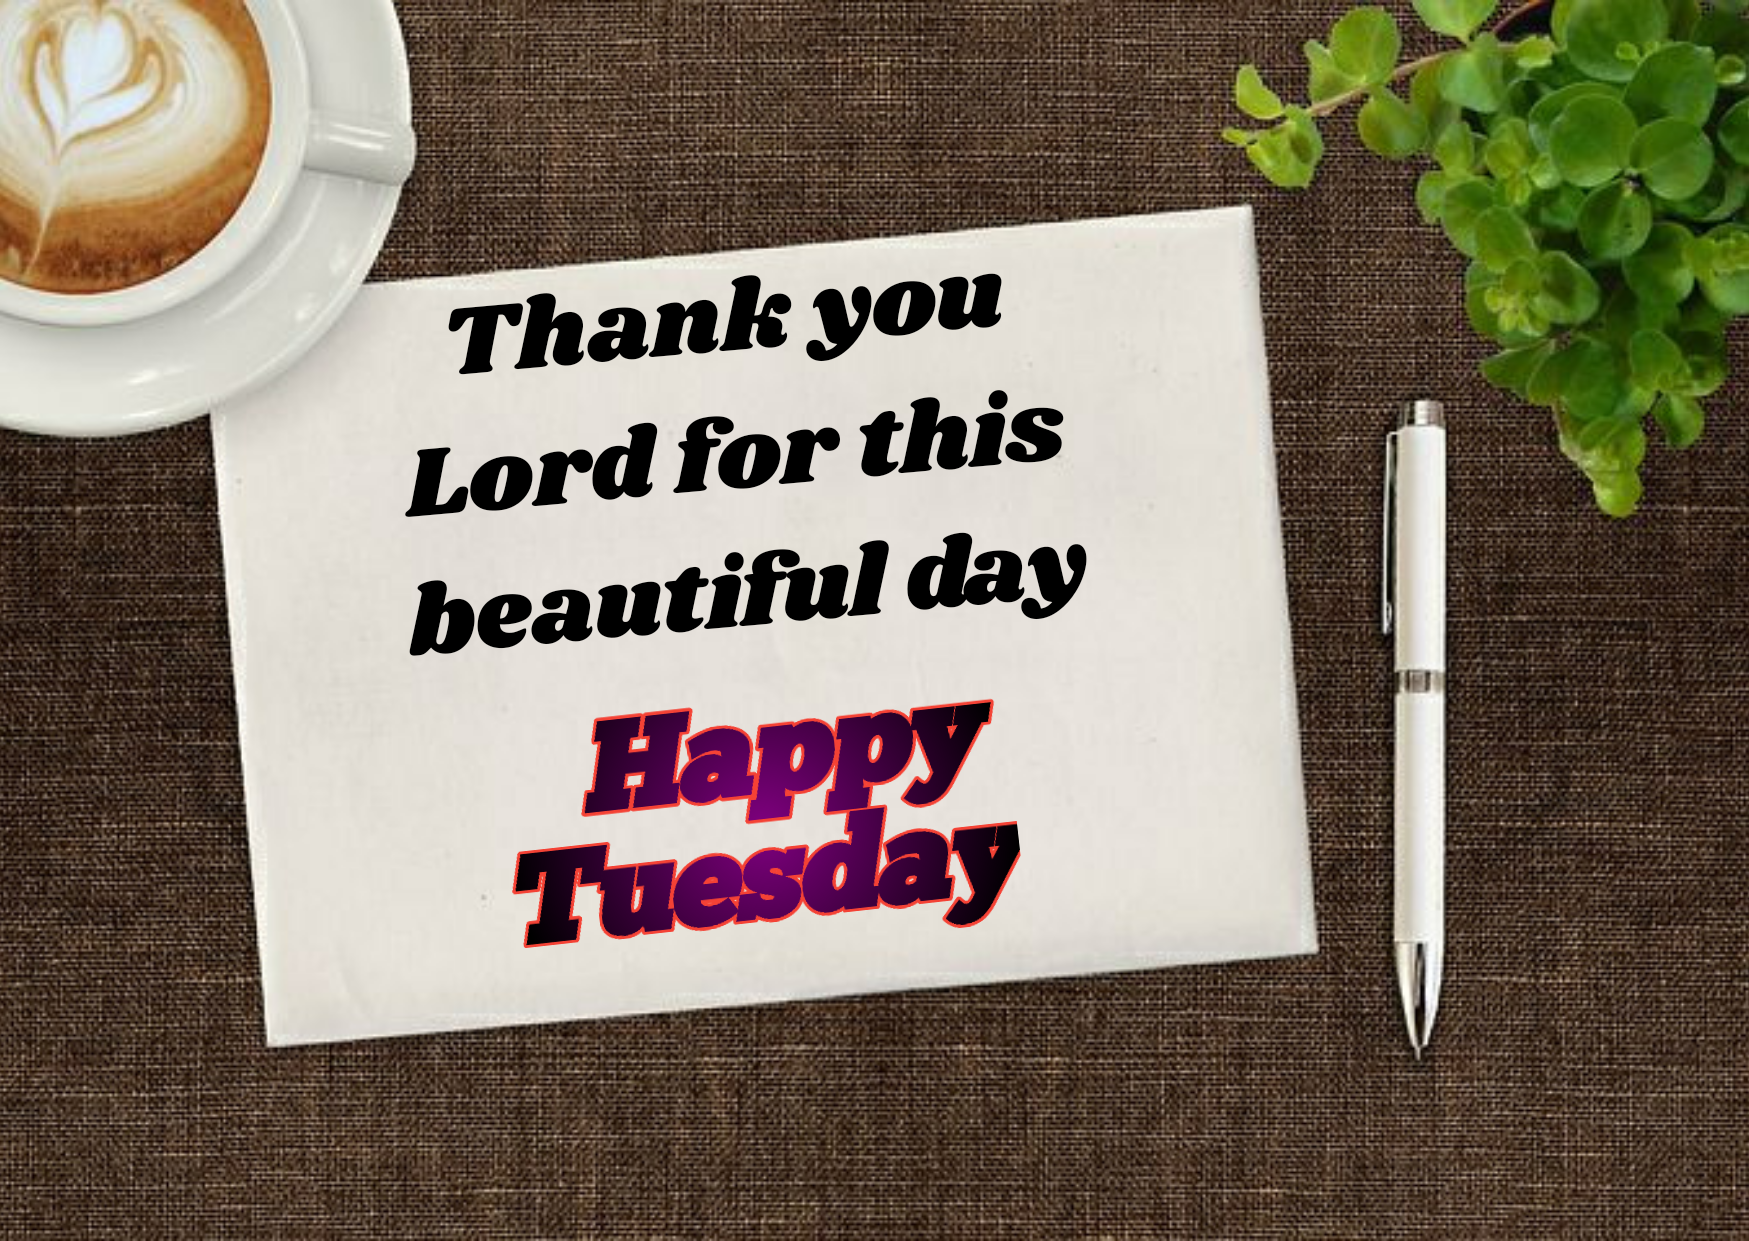 Happy Tuesday images, wishes, wallpaper, quotes, for whatsapp, Facebook,